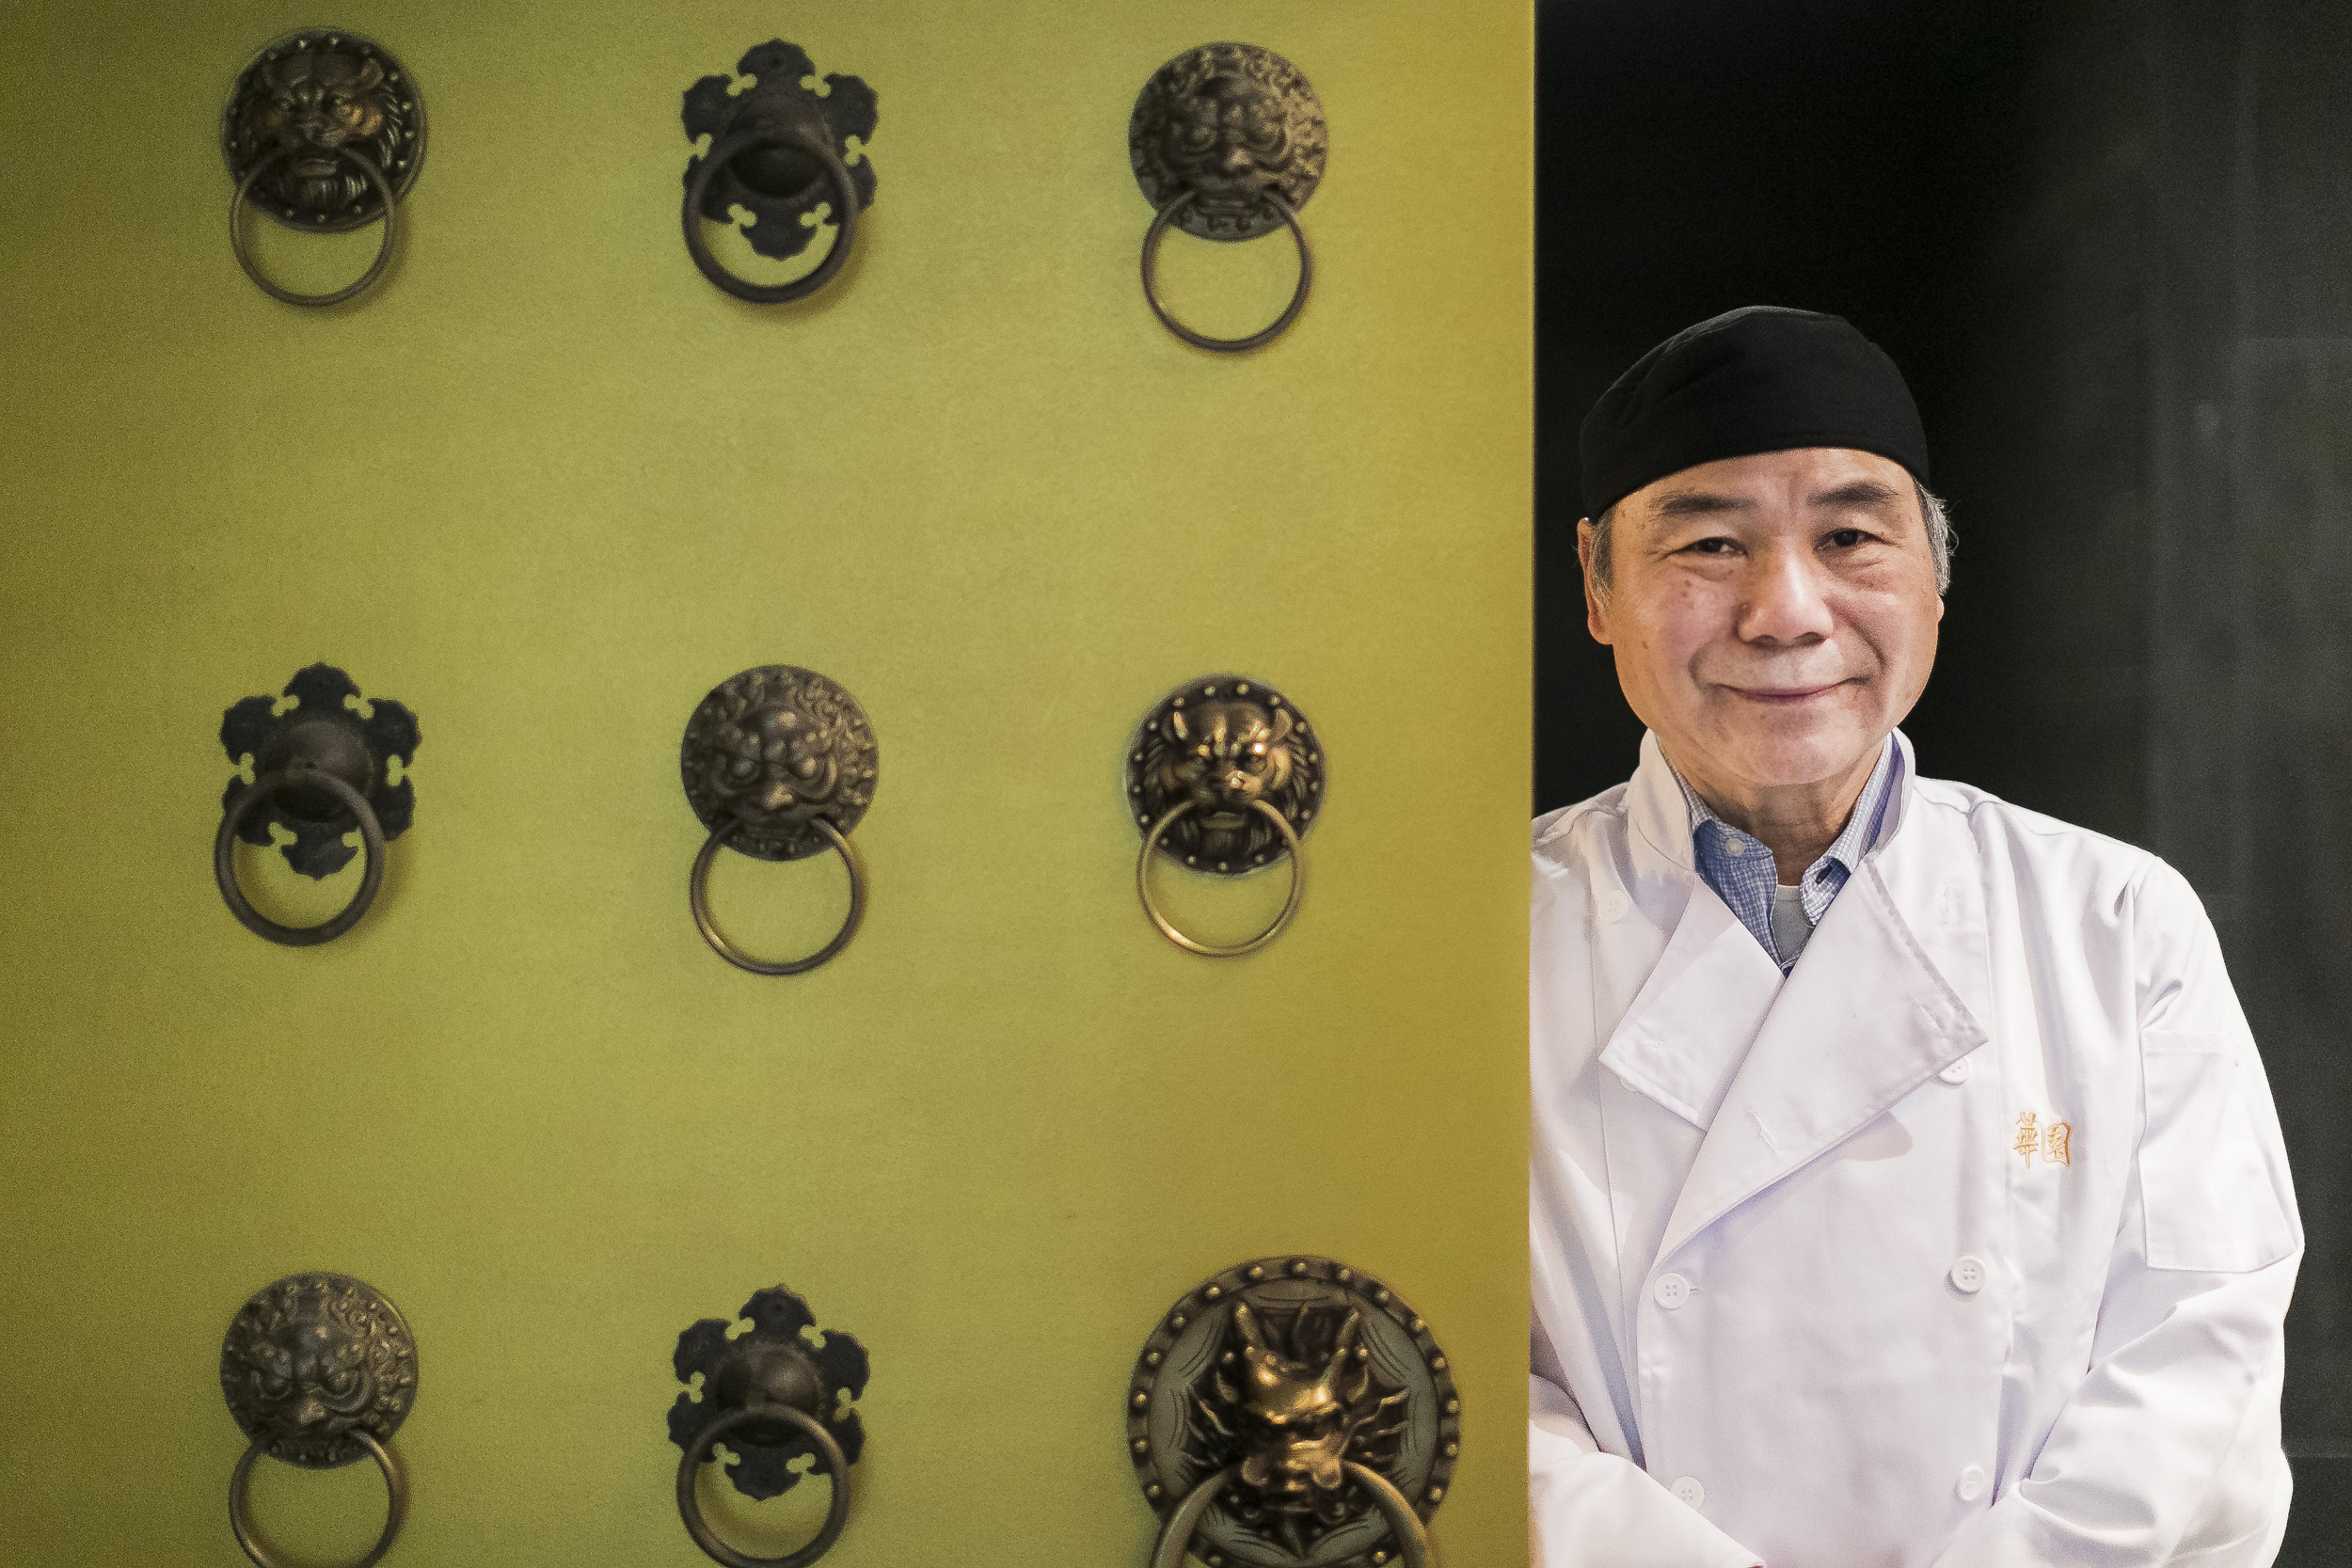 Image: Chen Lien Tang, the owner of Hwa Yuan